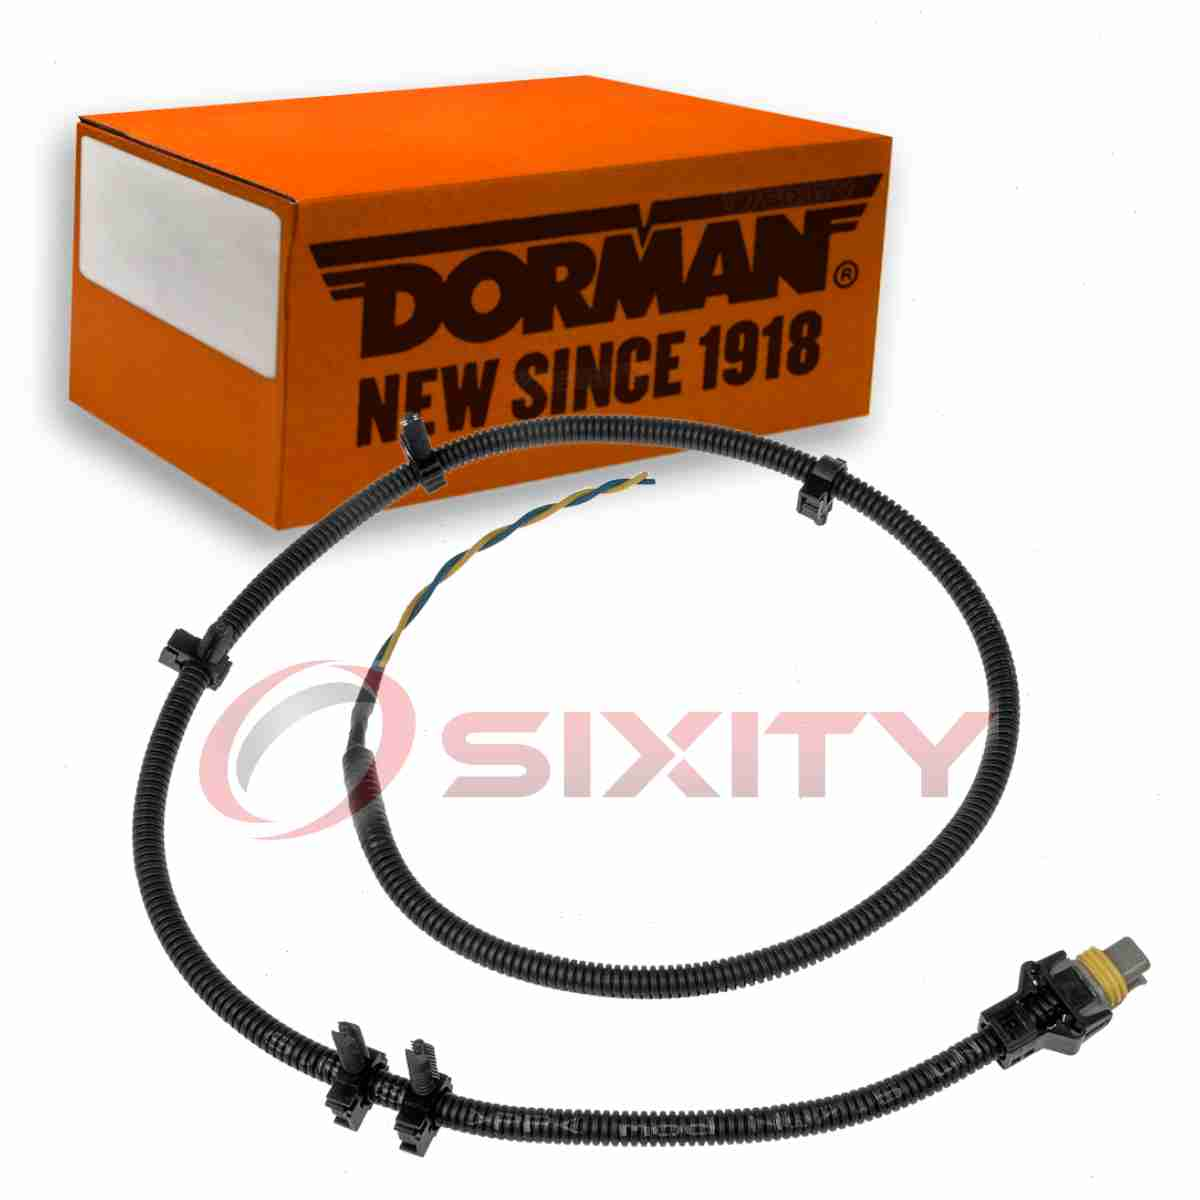 Details about Dorman Front Left ABS Sd Sensor Wiring Harness for Chevy on